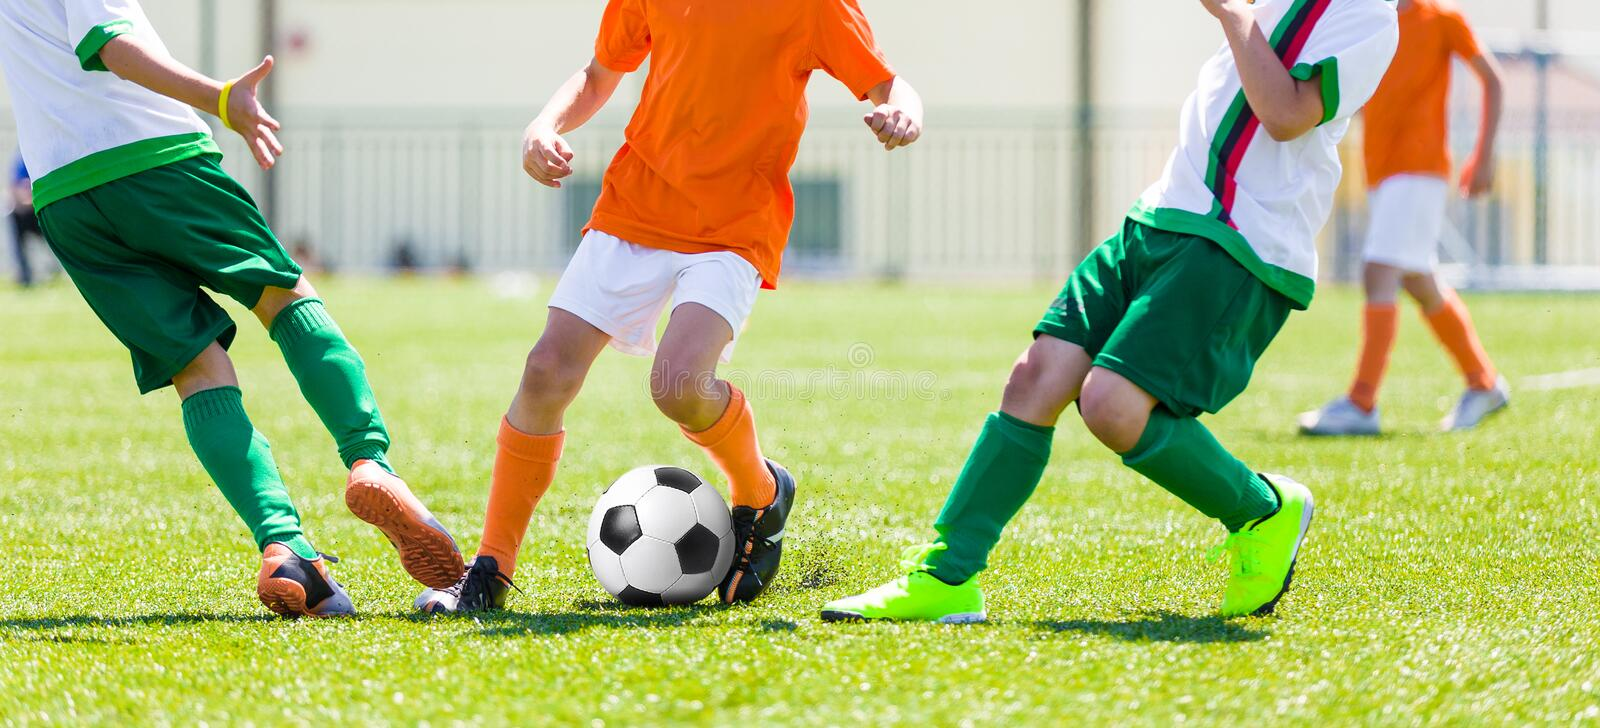 Young boys children in uniforms playing youth soccer football game. Tournament. Horizontal sport background stock photo